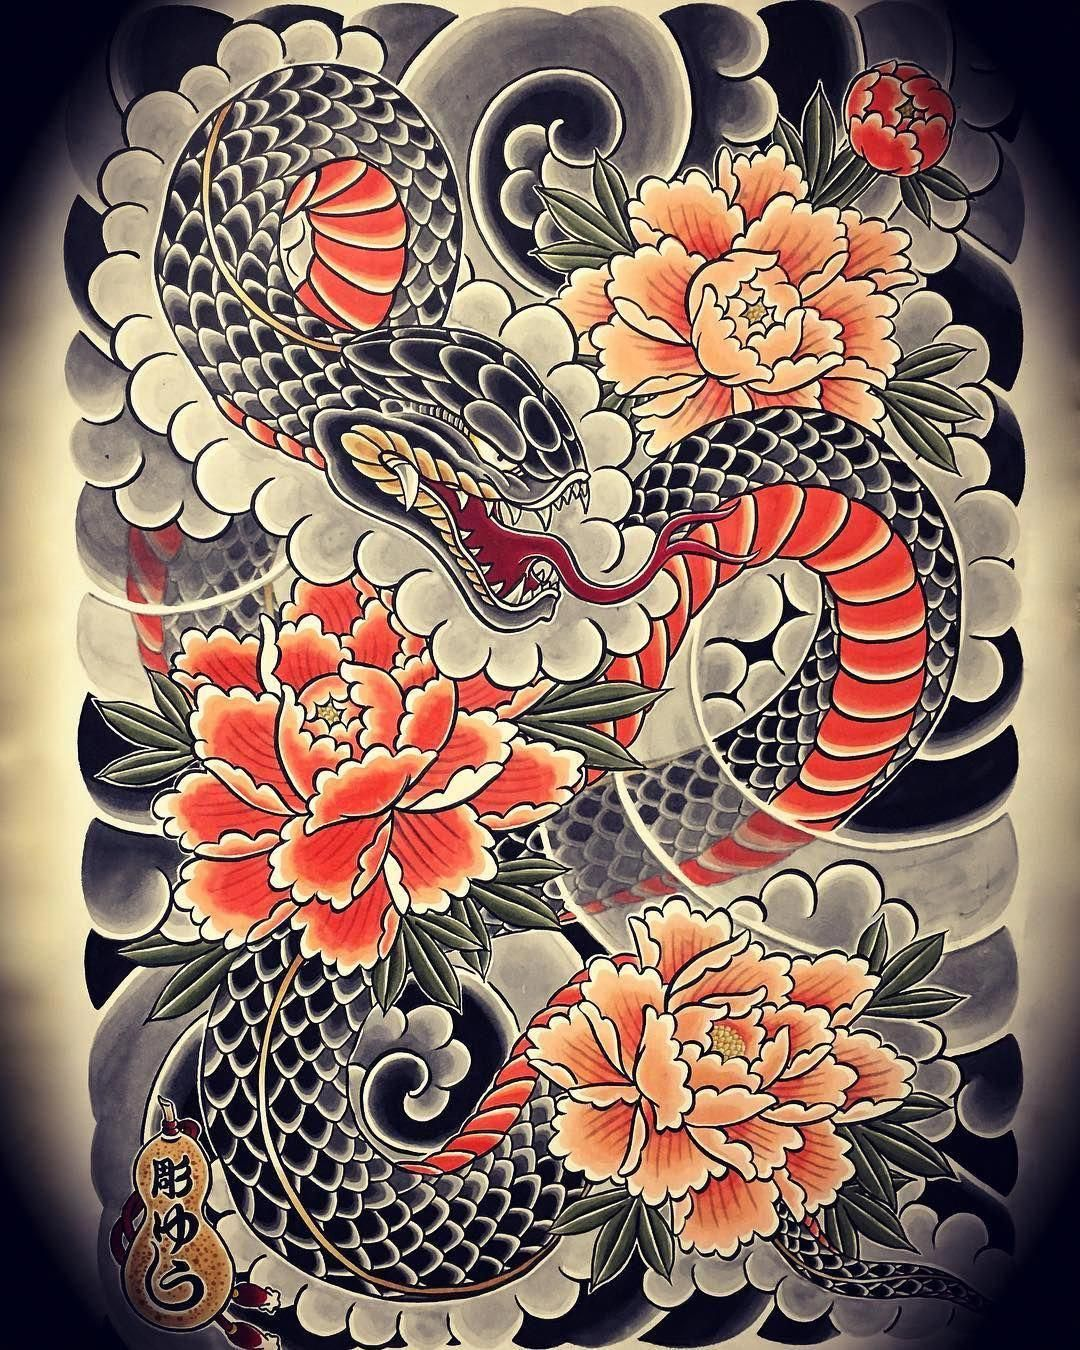 I Quite Simply Like The Colorings Lines And Linework This Is Certainly An Outstanding Artwo Japanese Snake Tattoo Tattoo Japanese Style Snake Tattoo Design